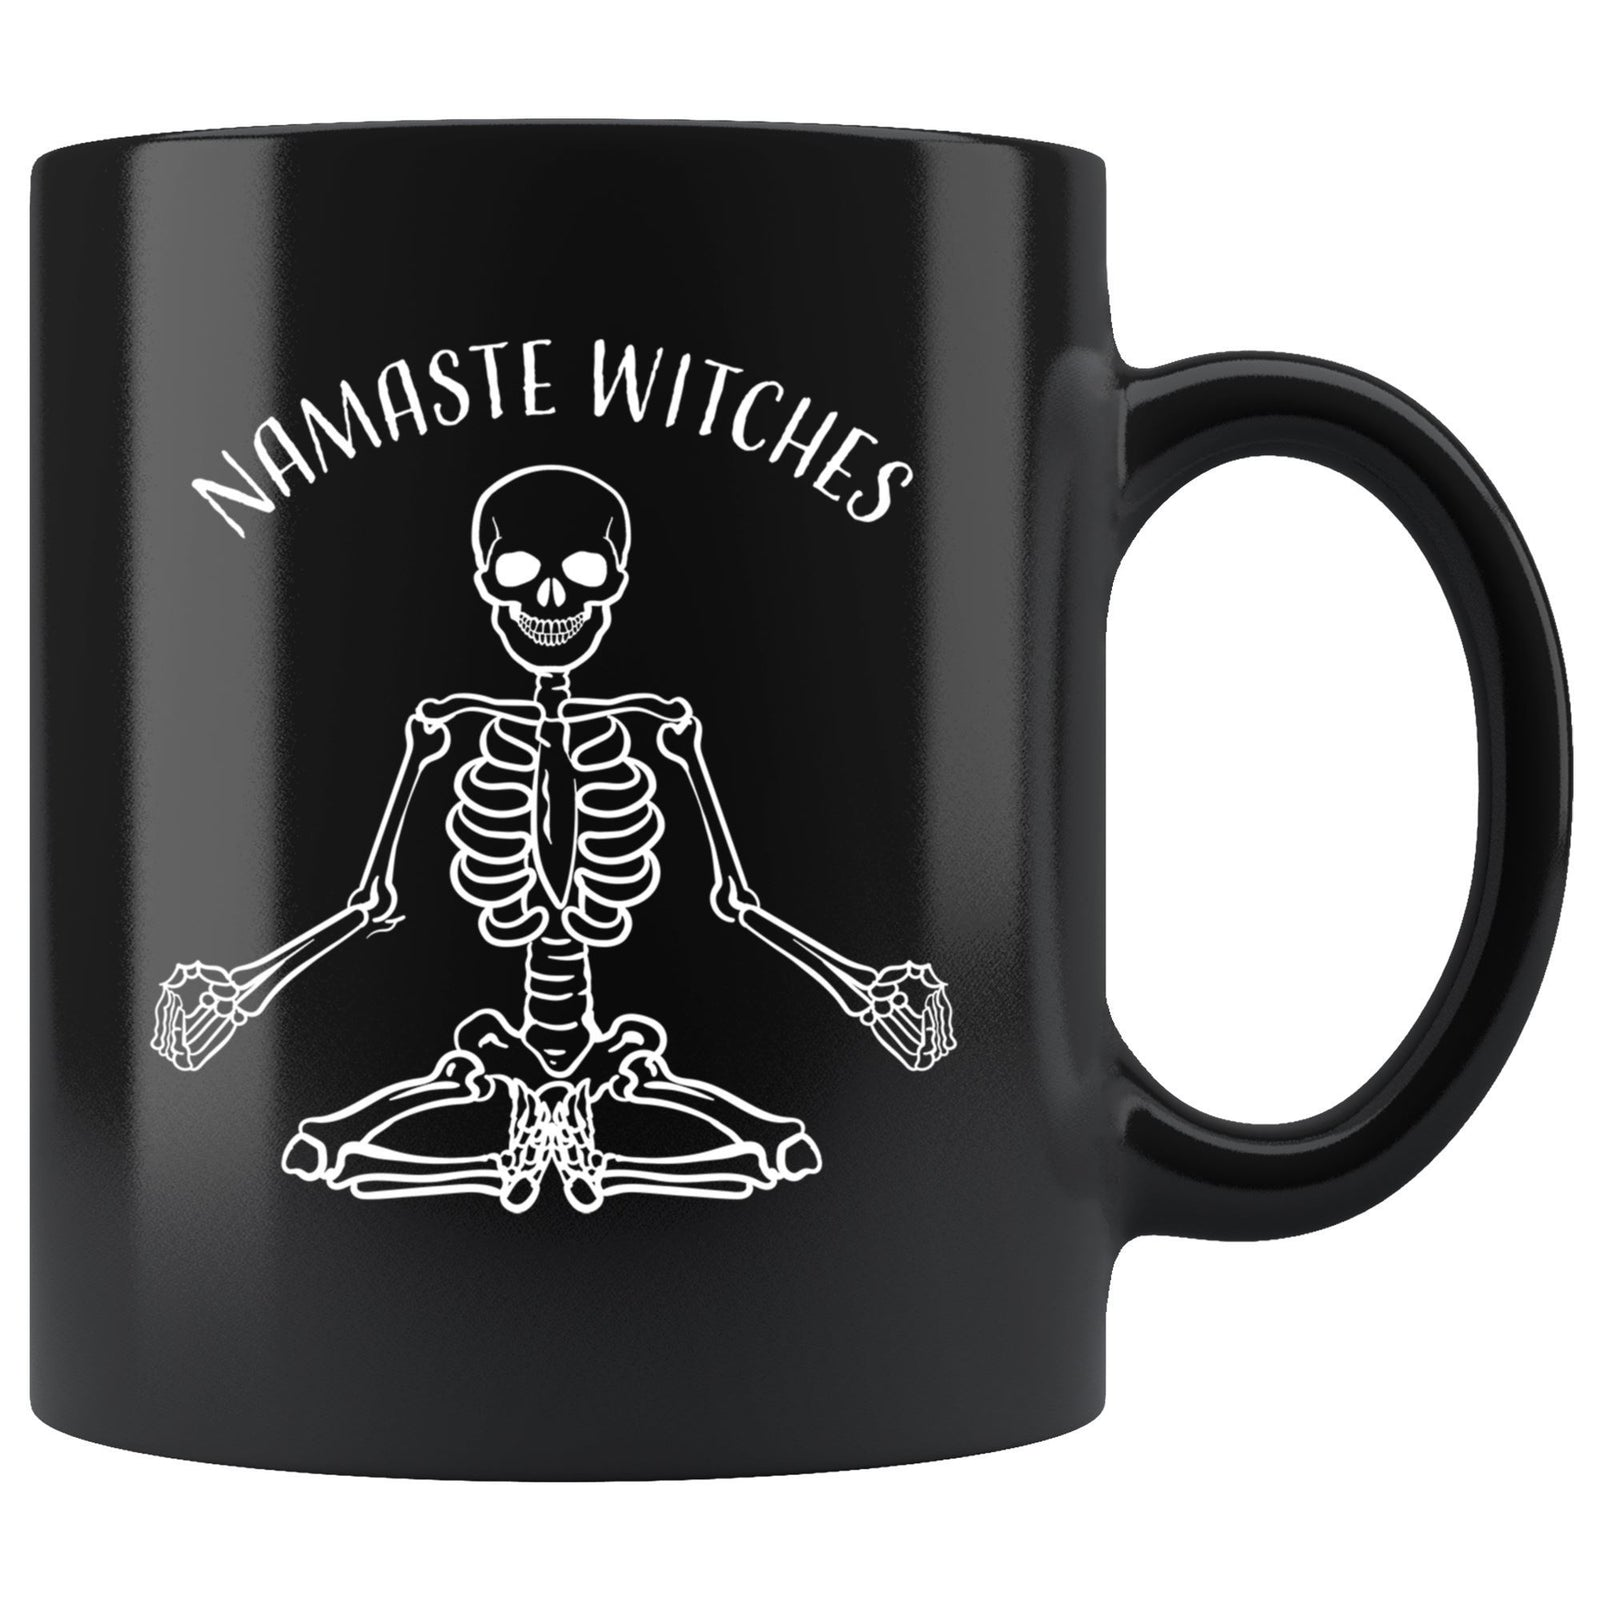 Namaste Witches Funny Halloween 11oz. Black Mug Drinkware teelaunch Namaste Witches